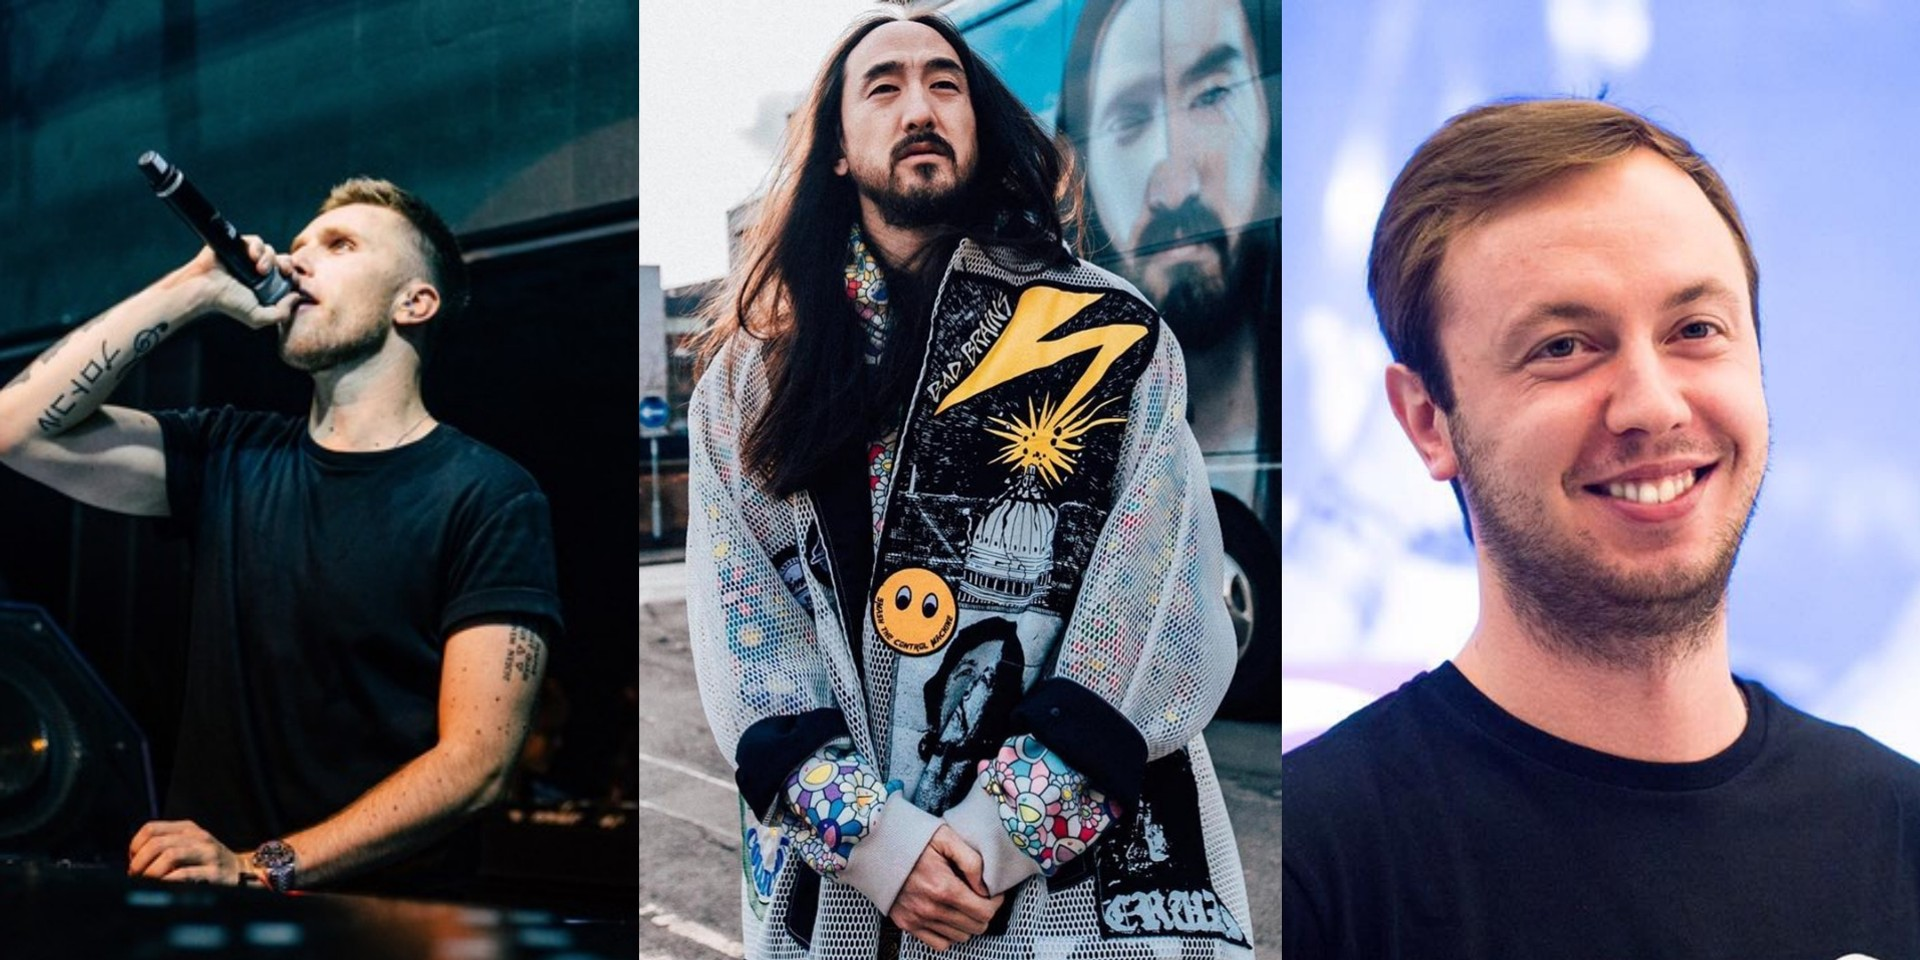 MARQUEE turns 1 with virtual party featuring performances by Nicky Romero, Steve Aoki, and more